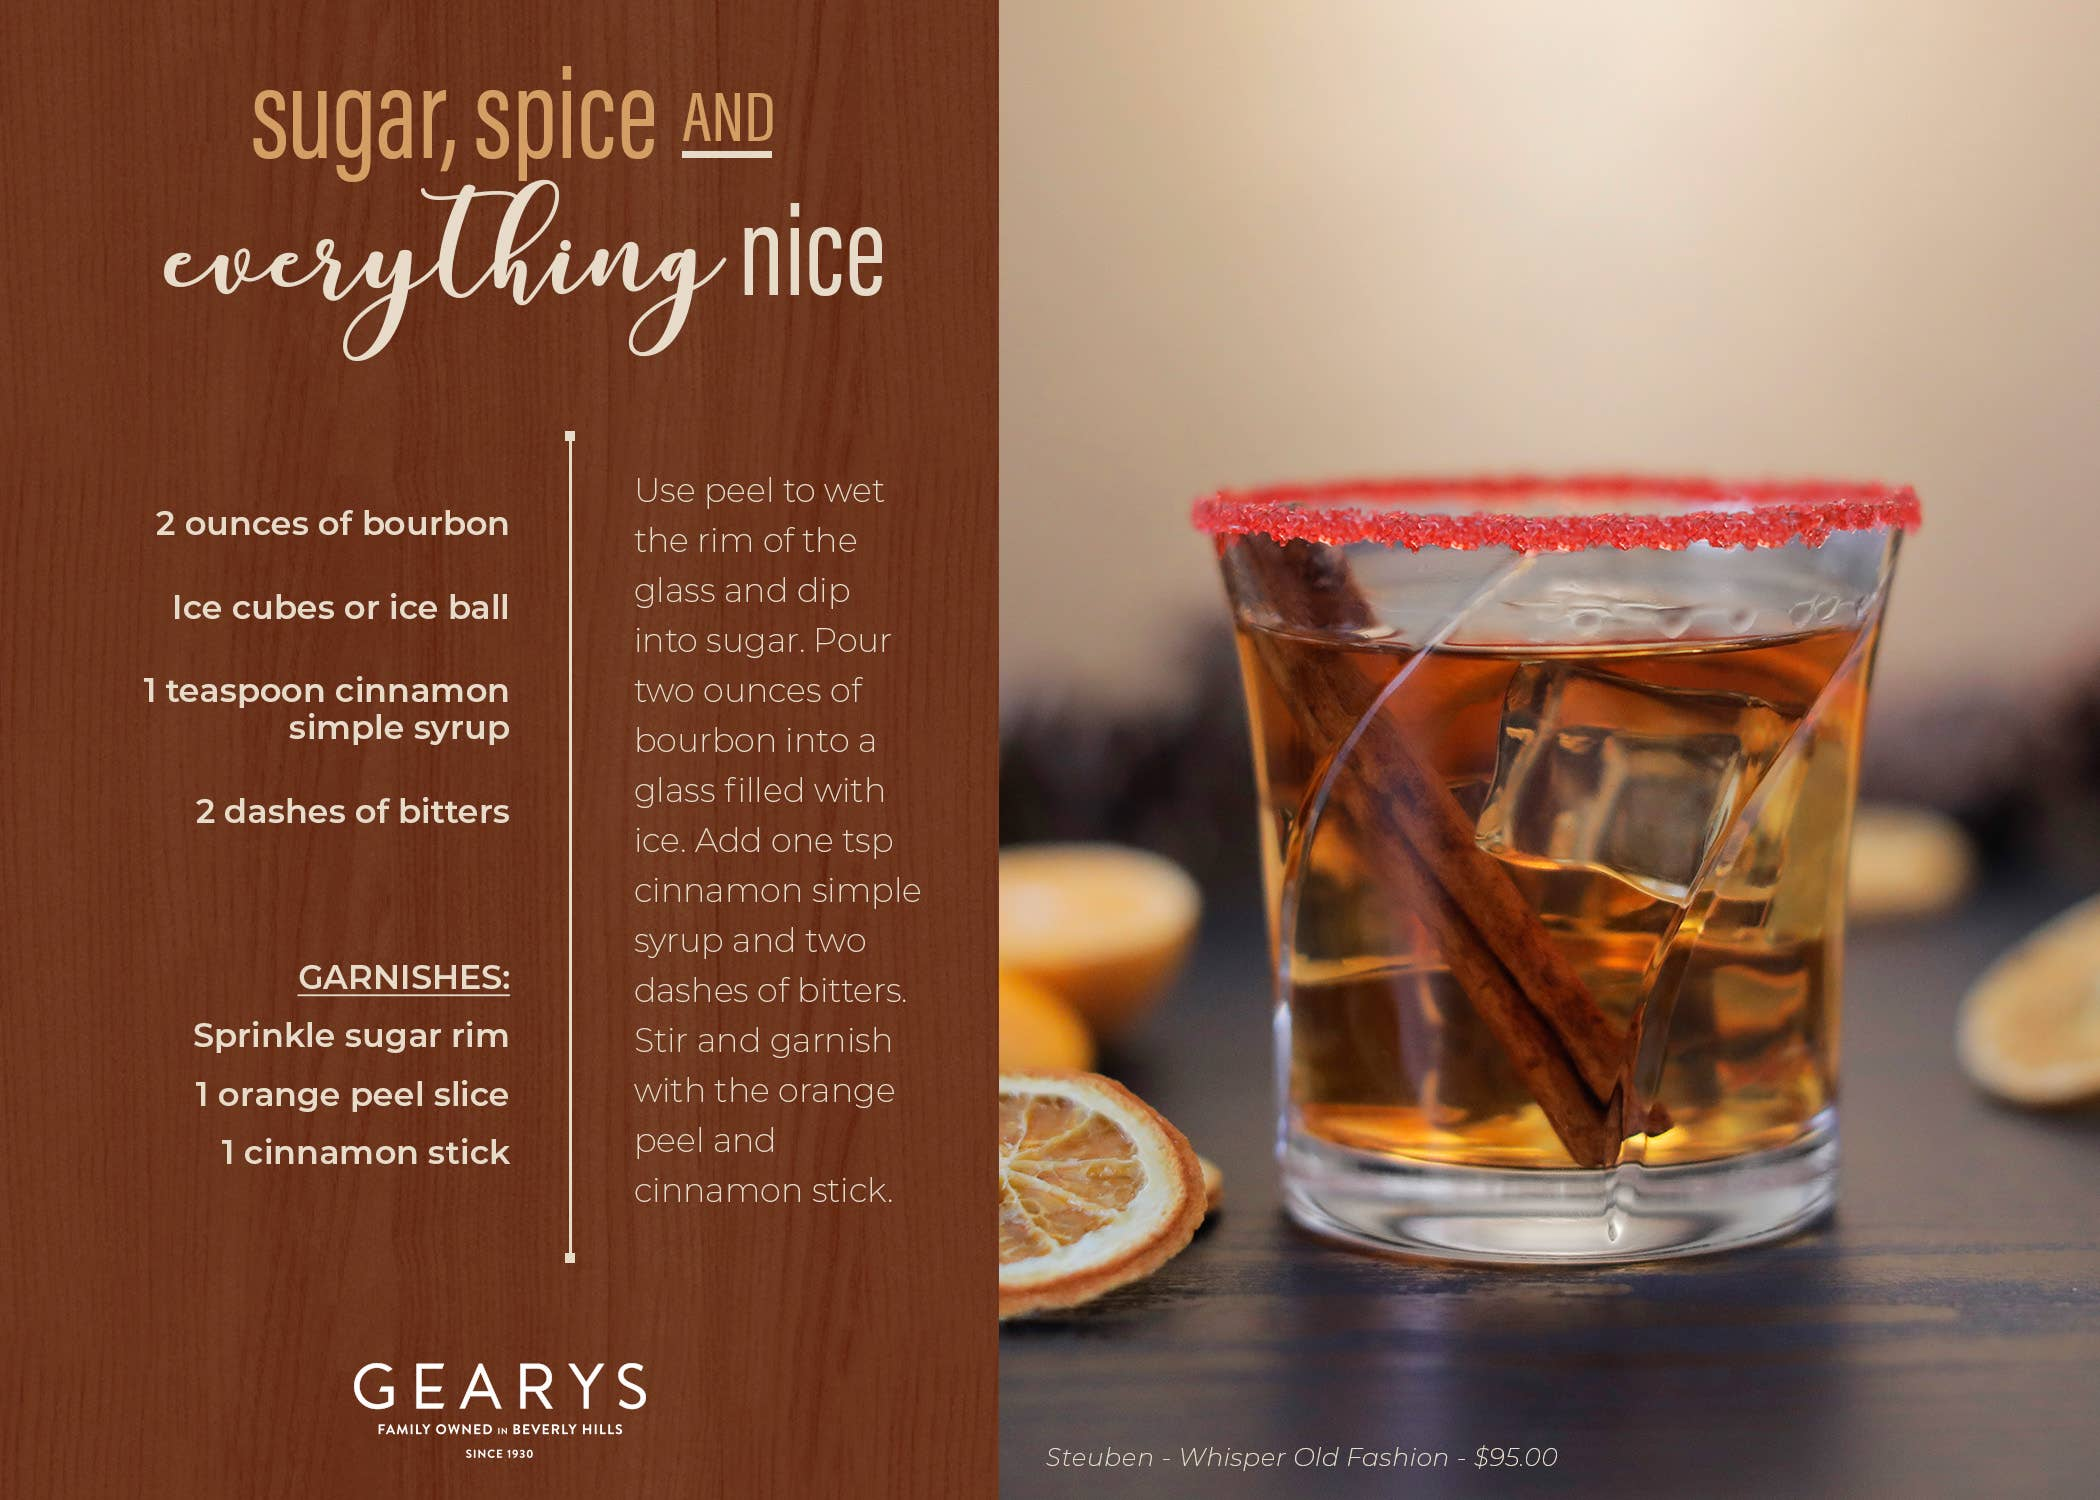 The Sugar, Spice & Everything Nice cocktail recipe card